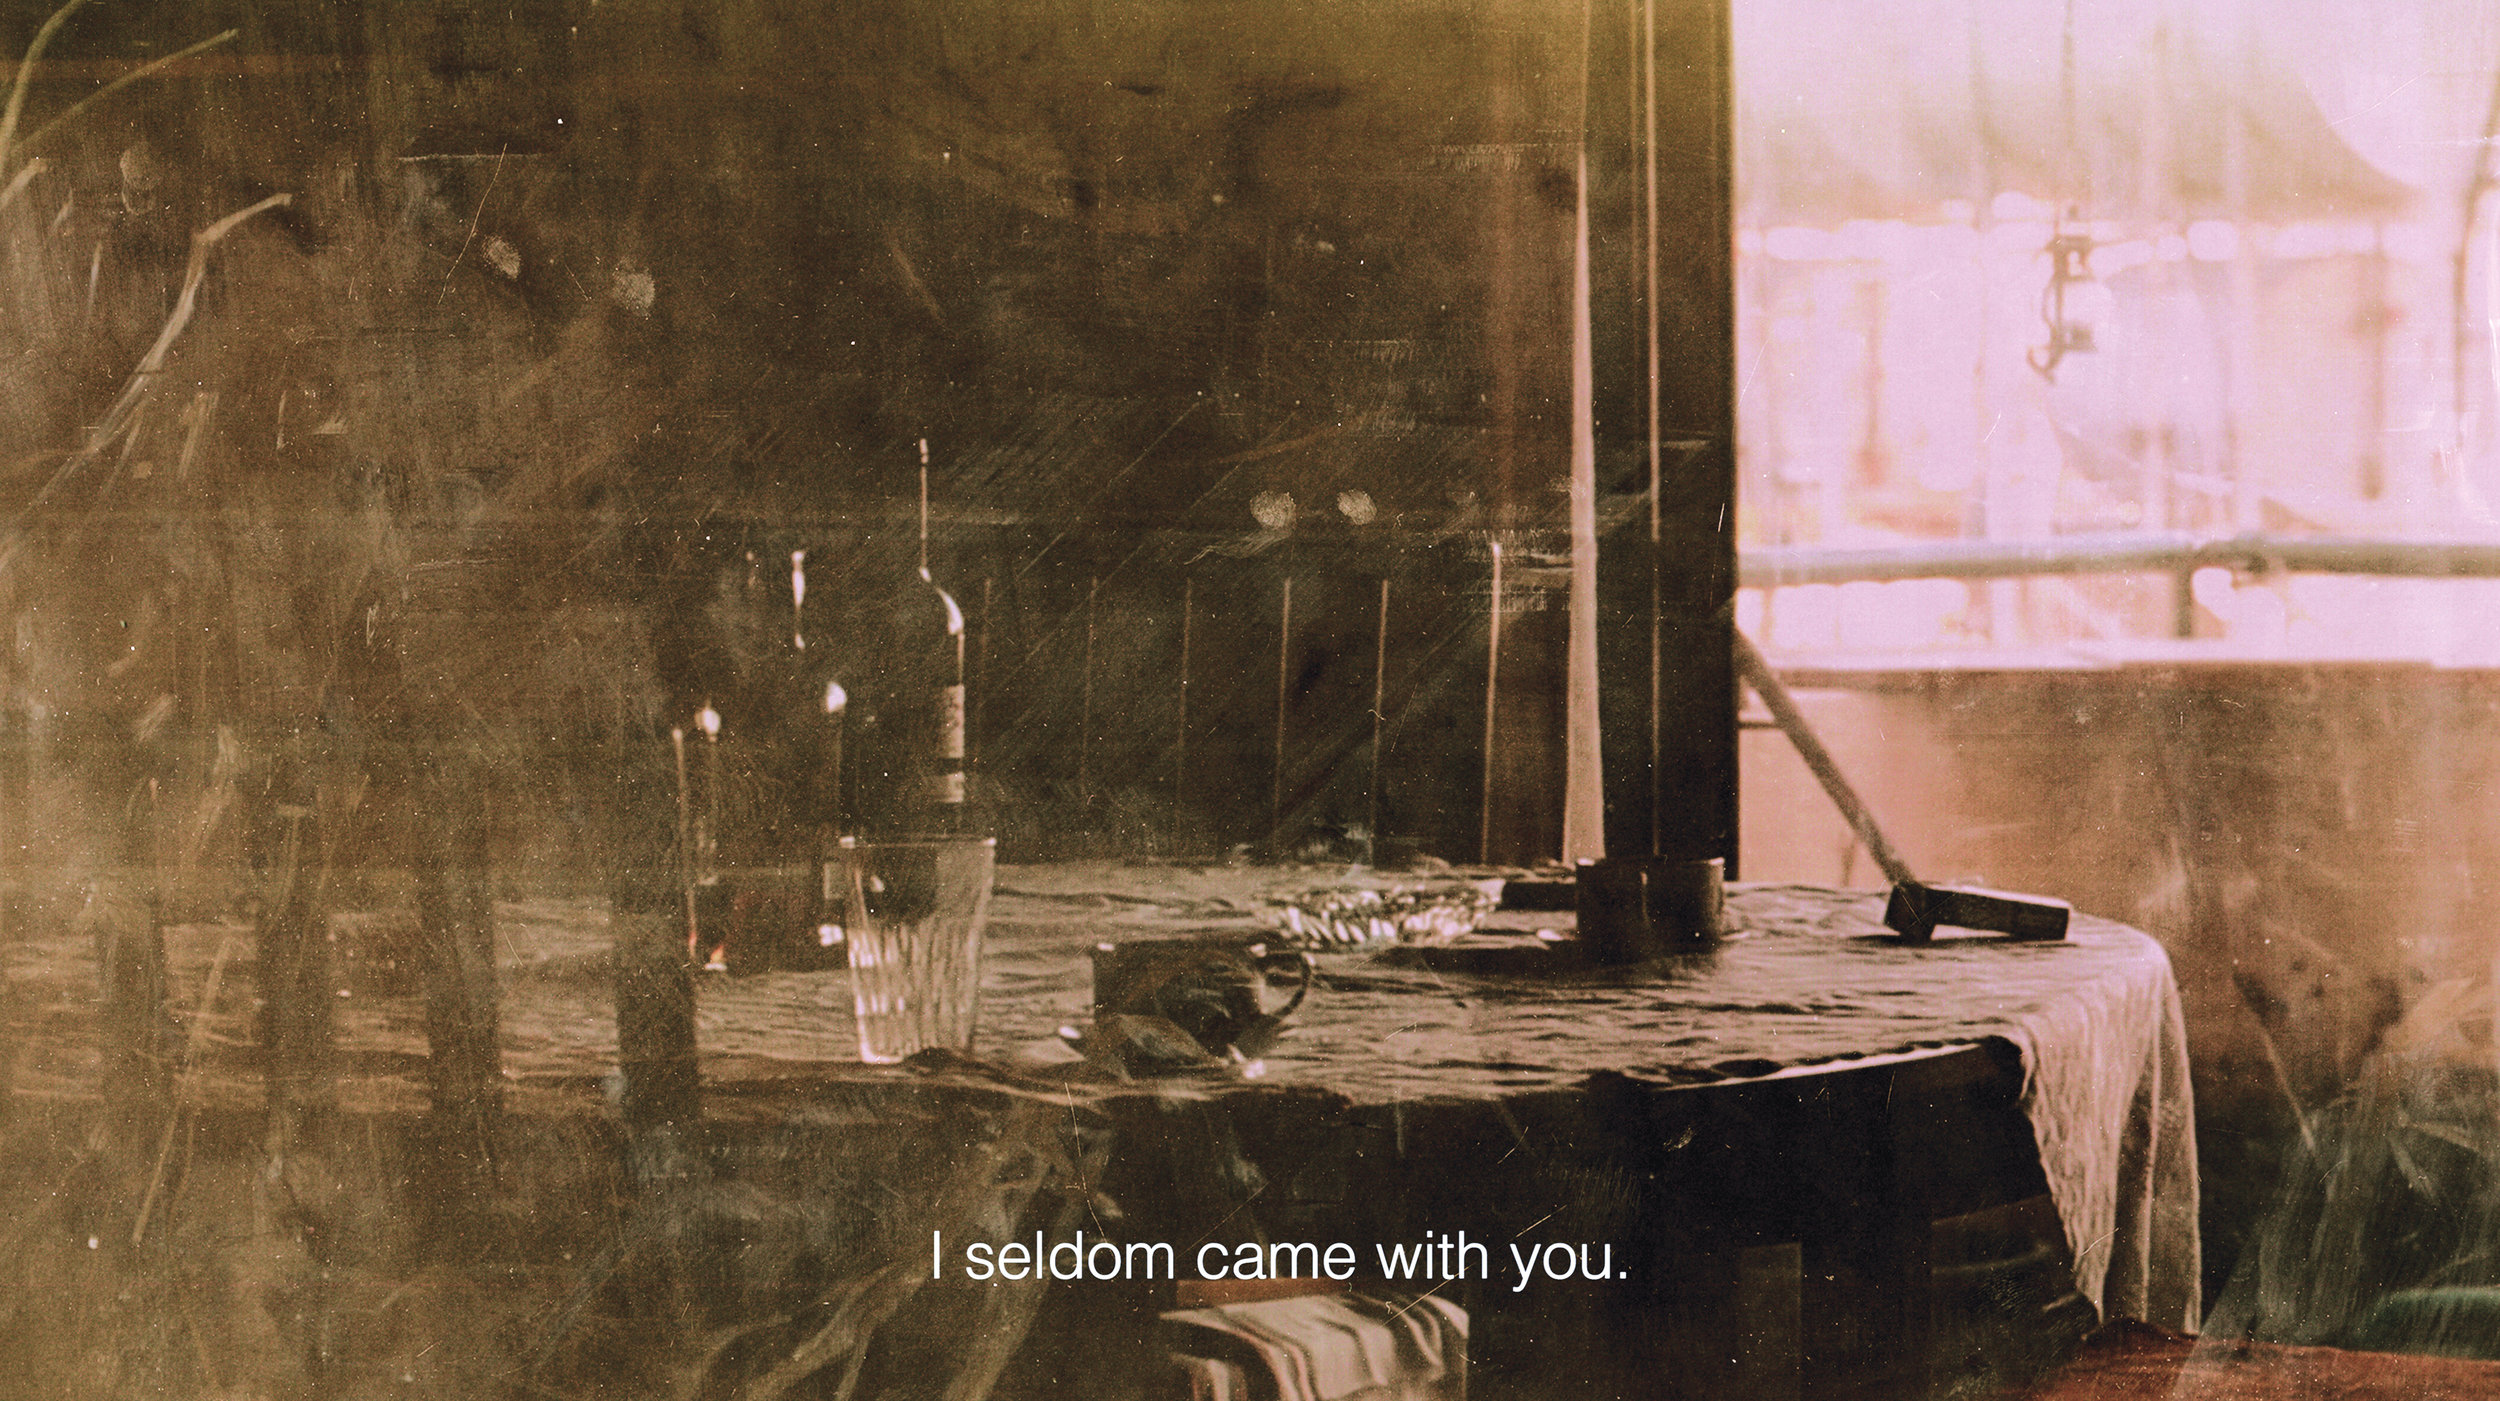 01_I seldom came with you.jpg